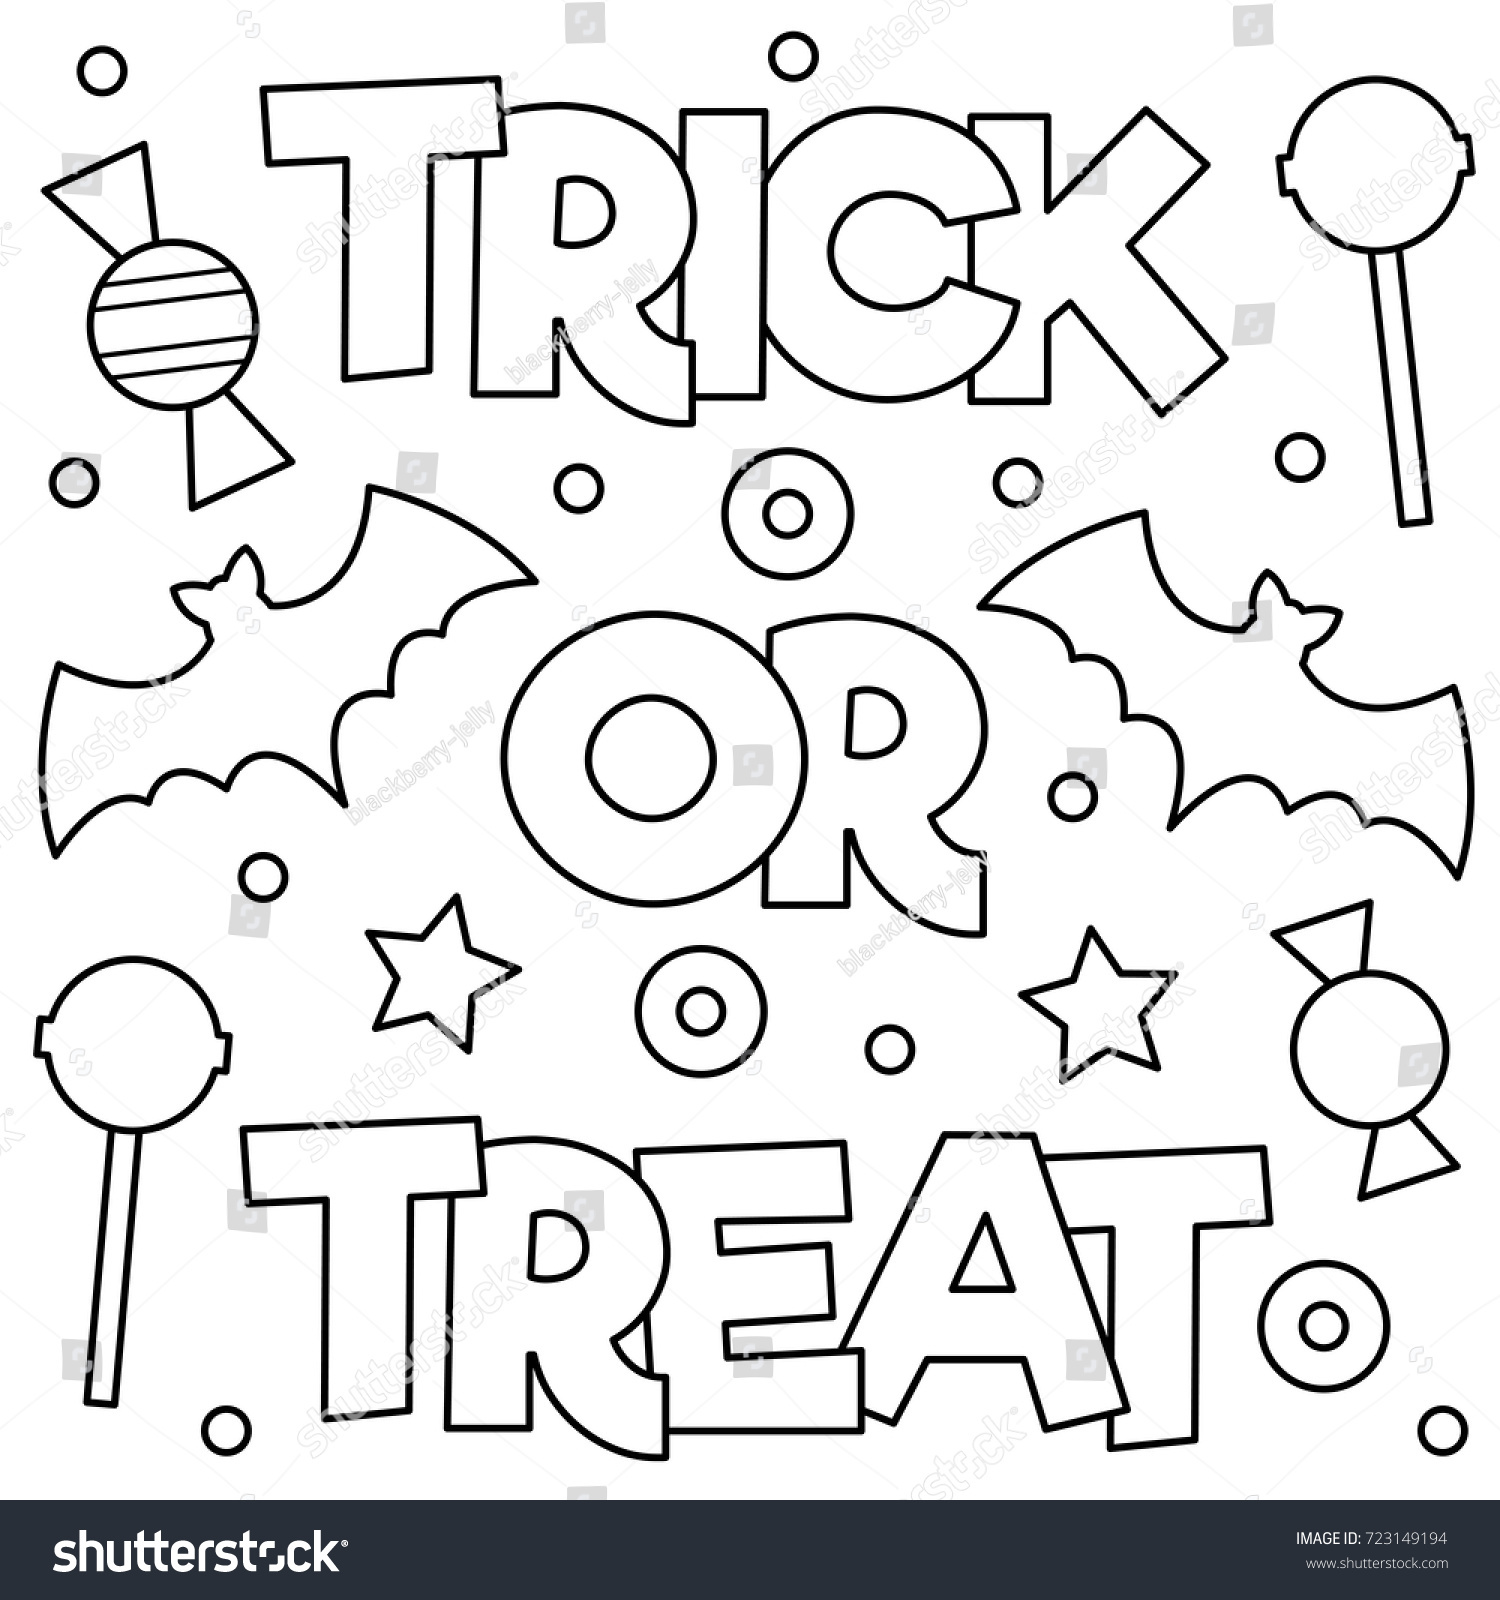 Trick Treat Coloring Page Vector Illustration Stock Vector (2018 ...